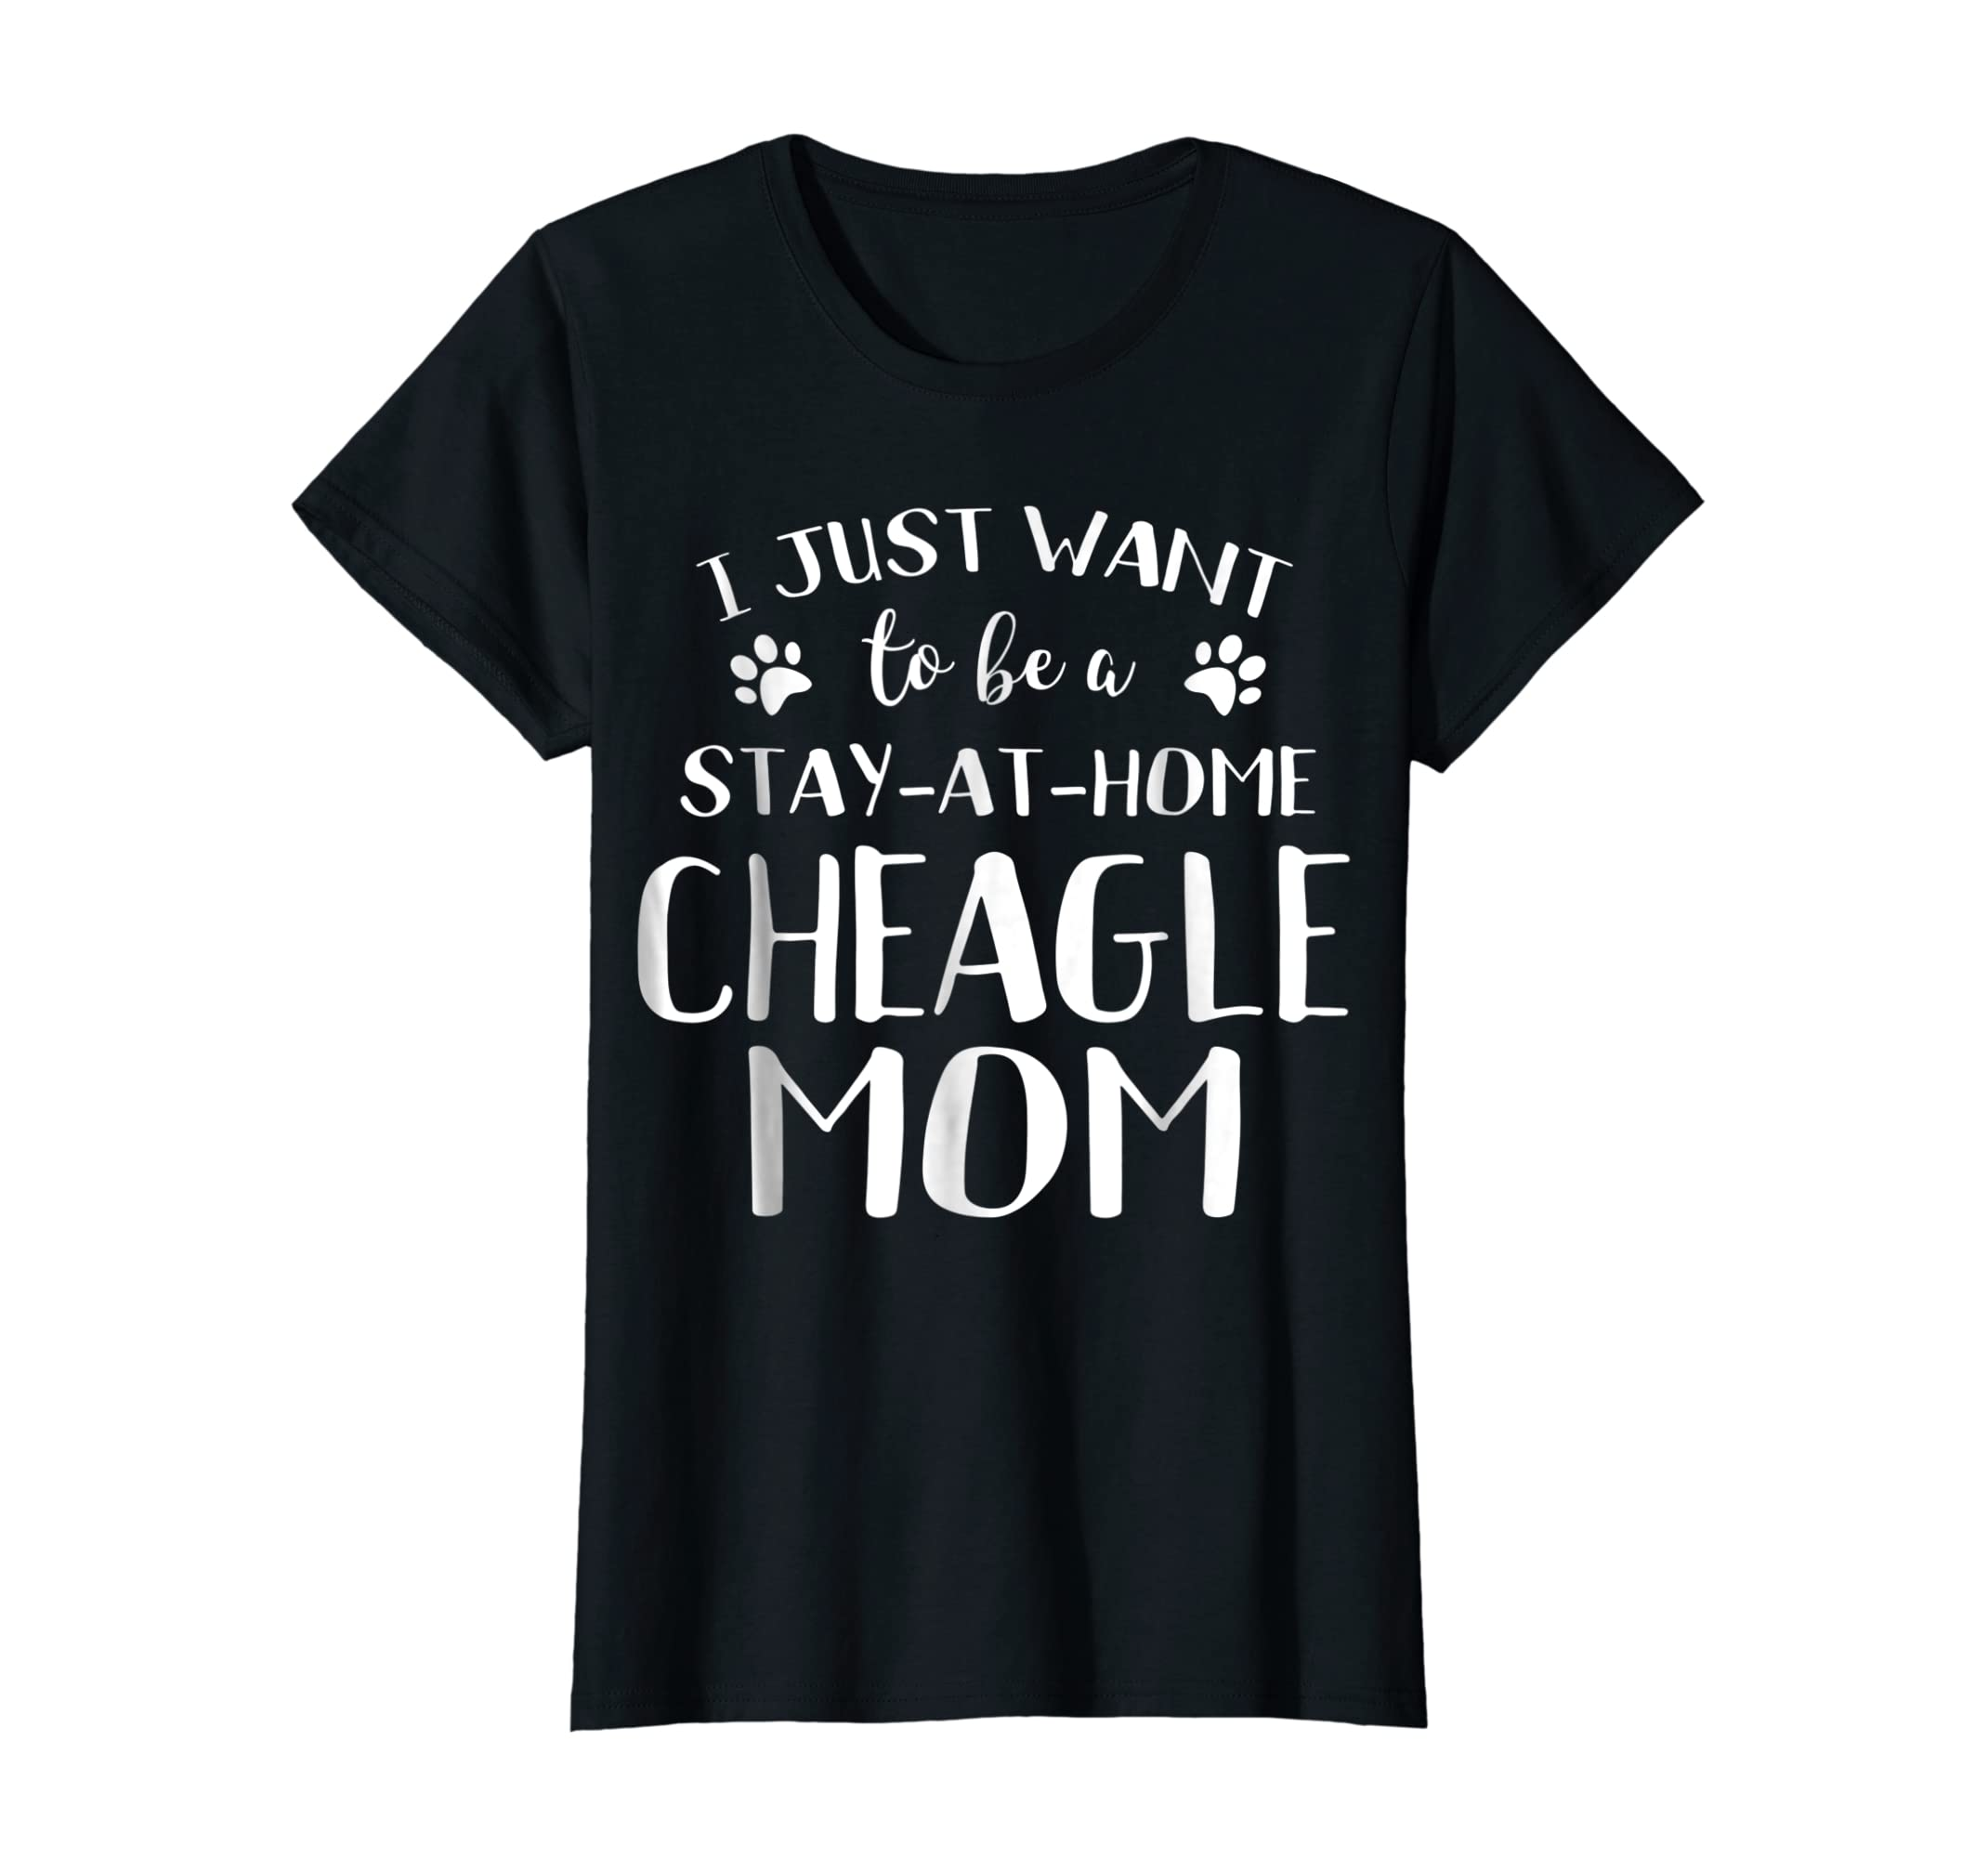 Cheagle Mom TShirt Cheagle Dog Breed Gift Pet Lover-Women's T-Shirt-Black